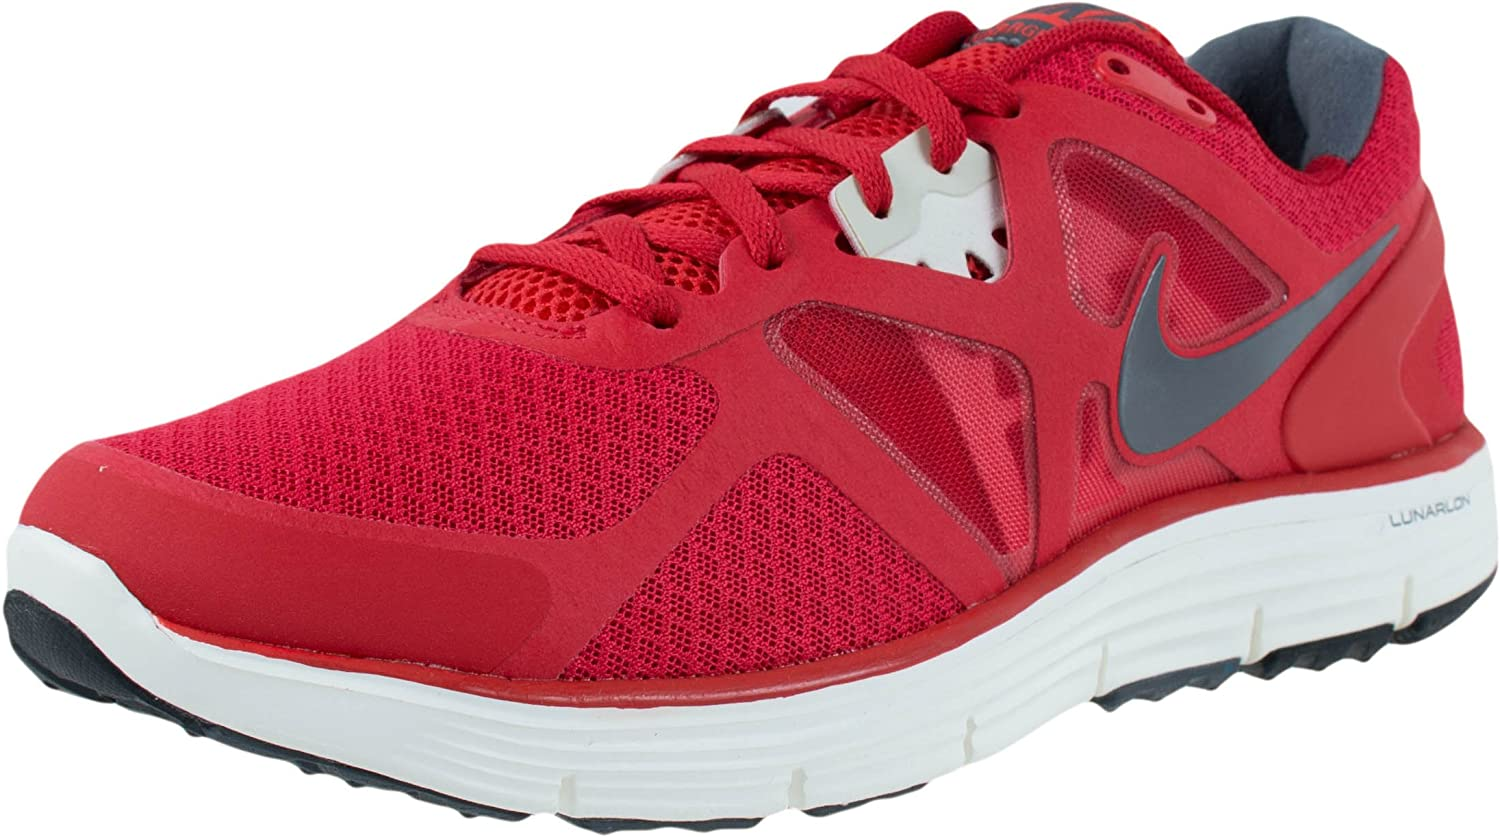 Nike Lunarglide 3 Running Shoes